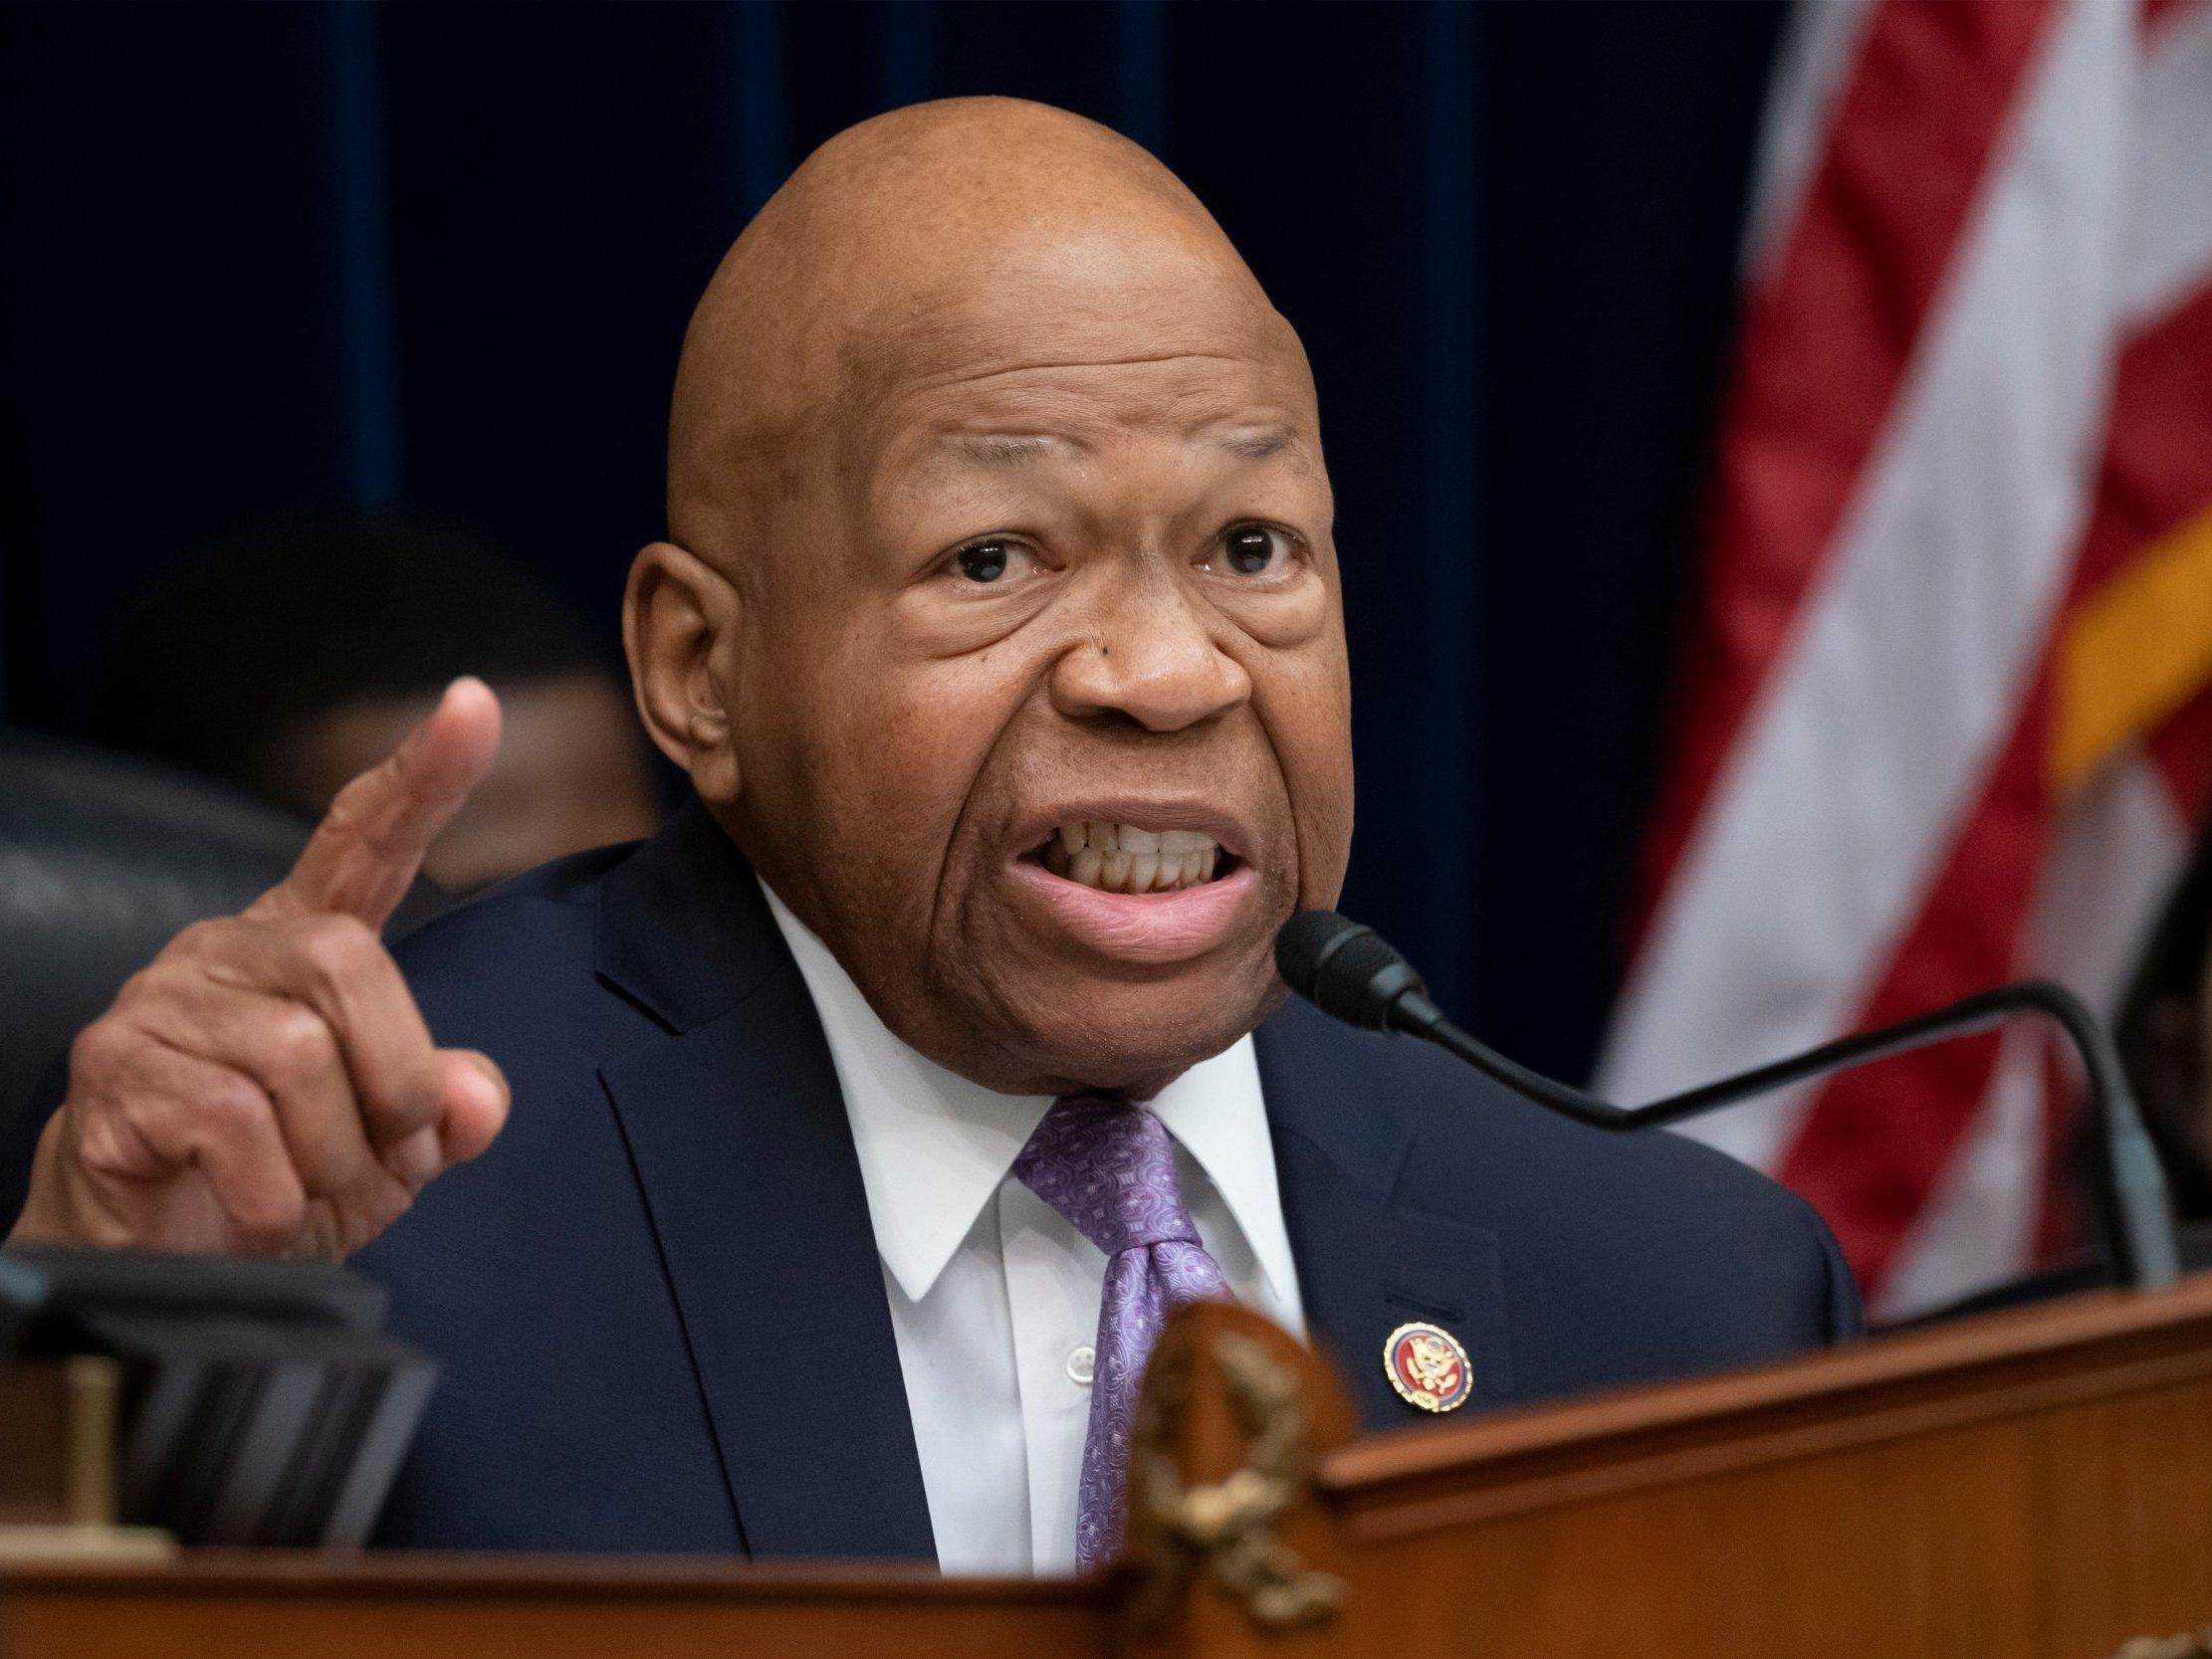 """Elijah Cummings rebuked Donald Trump's continued attacks against four Democratic congresswomen of colour during an interview on Sunday, calling the president a racist and saying his constituents tell him they're """"scared of their leader"""".The Maryland congressman spoke to ABC News' George Stephanopoulos about the House voting last week to condemn Mr Trump's """"racist comments"""" after the president told the congresswomen to """"go back"""" to their countries – despite all four being US citizens and only one having been born outside the US. """"What I'm hearing over and over again from my constituents, is 'please save our democracy, please save our country,'"""" Mr Cummings said. """"And you know something else they say George? They say 'I'm scared.'""""He added, """"I have never in my total of 37 years in public service – ever, heard a constituent say that they were scared of their leader.""""When asked if he believed the president was racist, Mr Cummings said, """"Yes. No doubt about it."""" He added, """"I tried to give him the benefit of the doubt, but I got to tell you George … when I think about what [Mr Trump] said to these young ladies who are merely trying to bring excellence to government and trying to make sure that generations yet unborn have an opportunity to experience a true democracy, when I hear those things it takes me back.""""Mr Cummings, the chairman of the House Oversight Committee, condemned Mr Trump's attacks throughout last week as the president spent several days hurling insults towards Alexandria Ocasio-Cortez, Rashida Tlaib, Ilhan Omar and Ayanna Pressley, claiming the congresswomen don't love the United States. He said in a statement during the House vote last week he was """"disappointed"""" the president """"would share these racist sentiments,"""" adding, """"We are still working to fight against redlining, voter intimidation, hate crimes, and mass incarceration. Our country deserves better than this. The world deserves better than this.""""The congressman later recalled facing similar racist t"""